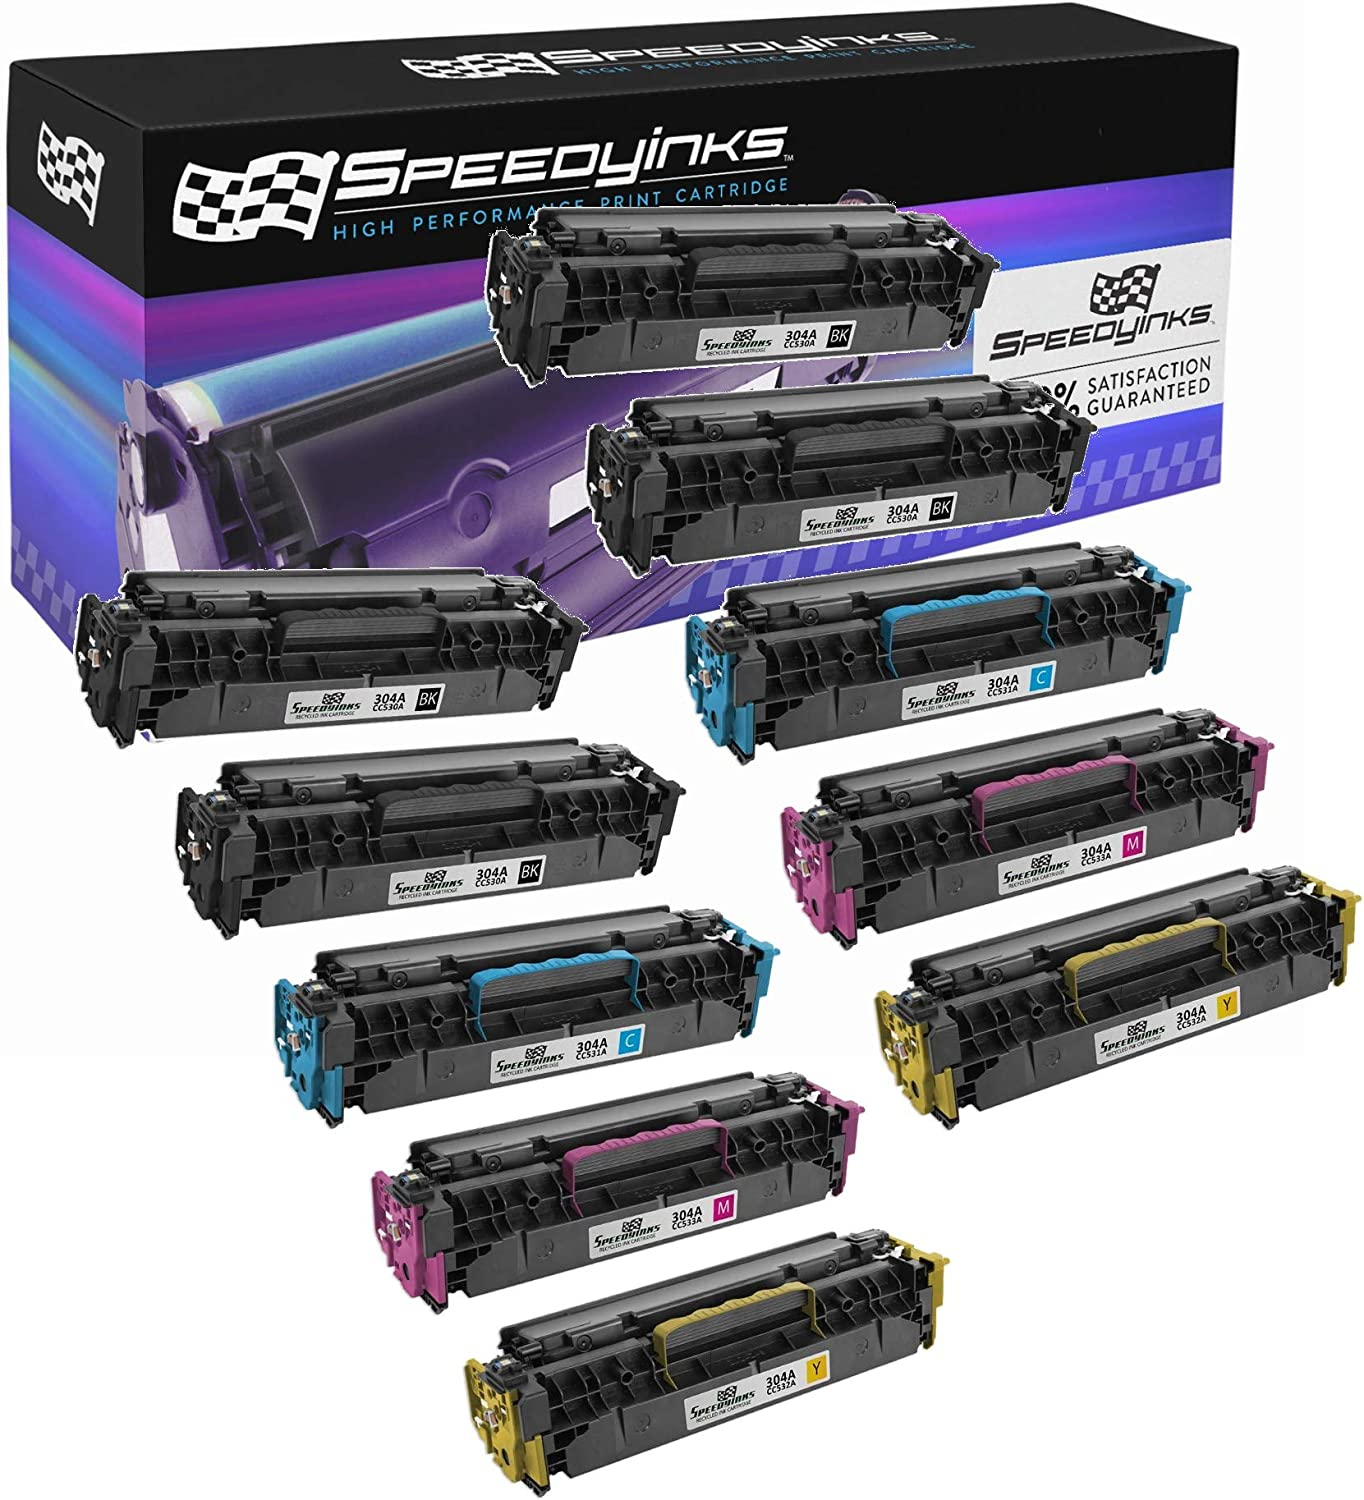 Speedy Inks Remanufactured Toner Cartridge Replacement for HP 304A (1 Black, 1 Cyan, 1 Magenta, 1 Yellow, 4-Pack)